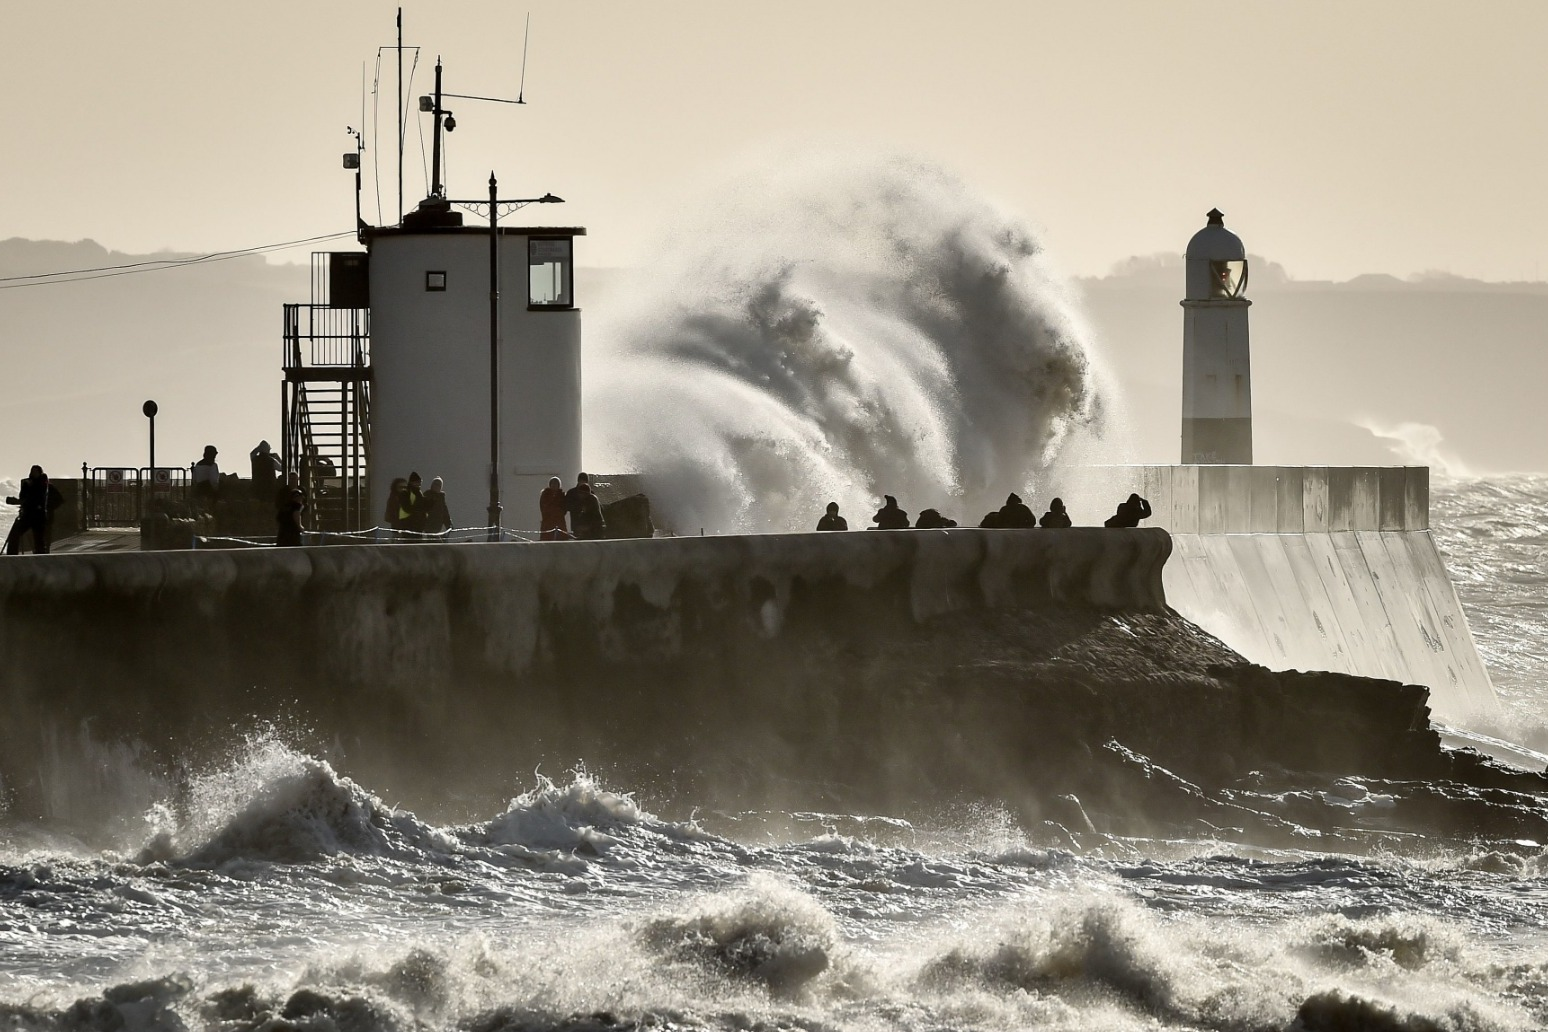 Safety warnings issued for coastline ahead of predicted 70mph winds